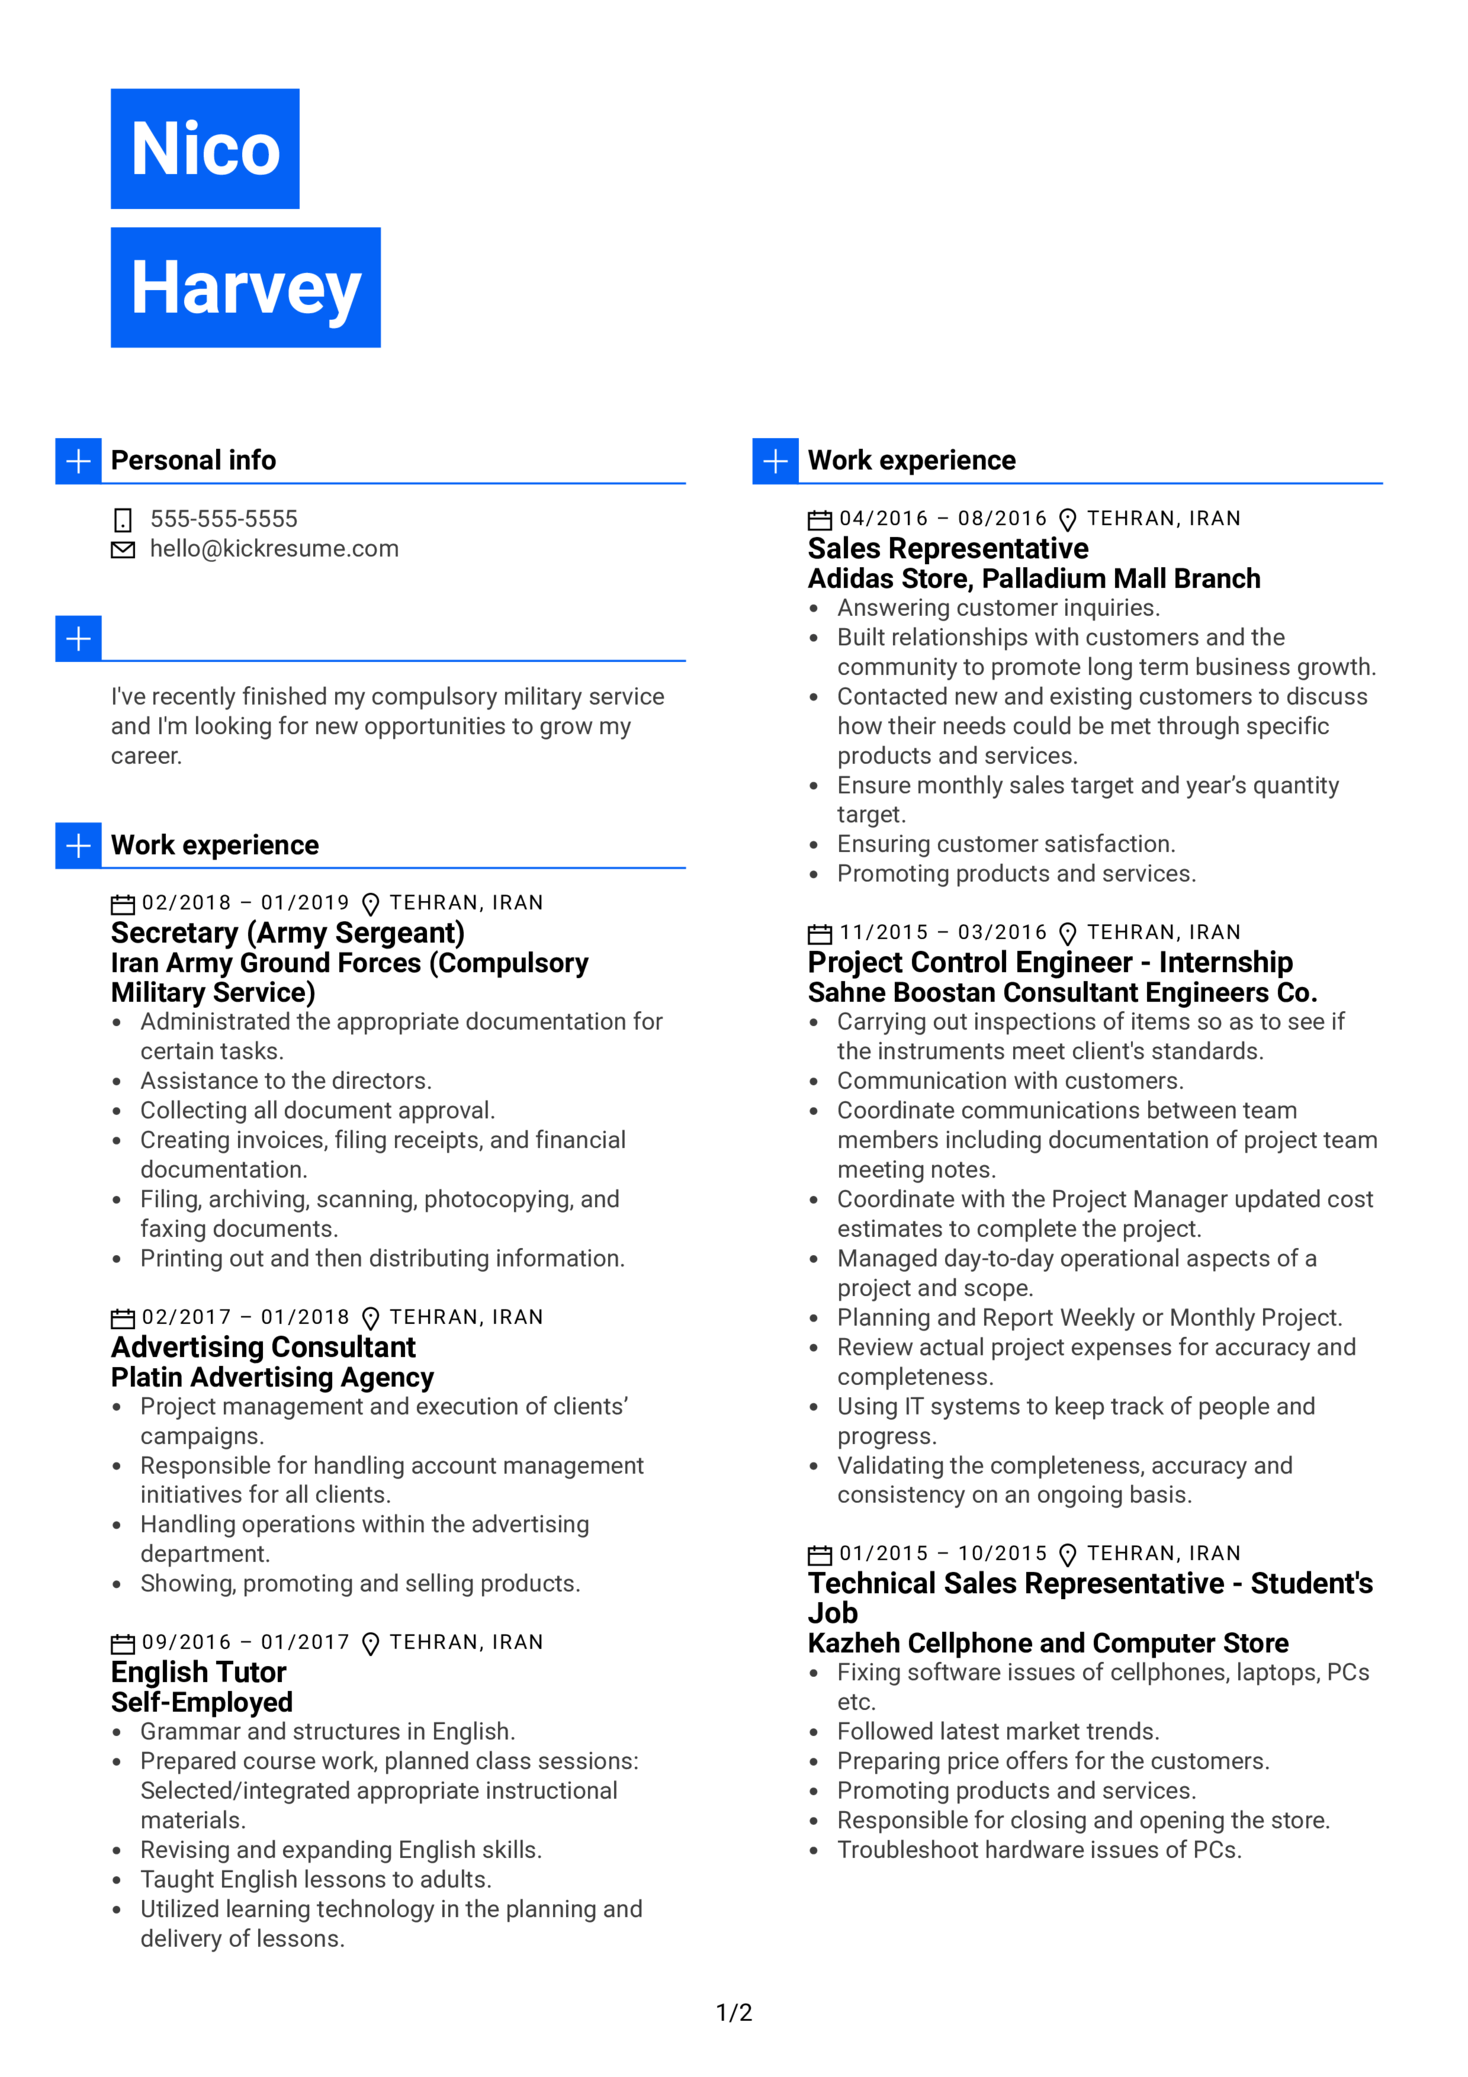 British American Tobacco Marketing Intern Resume Example